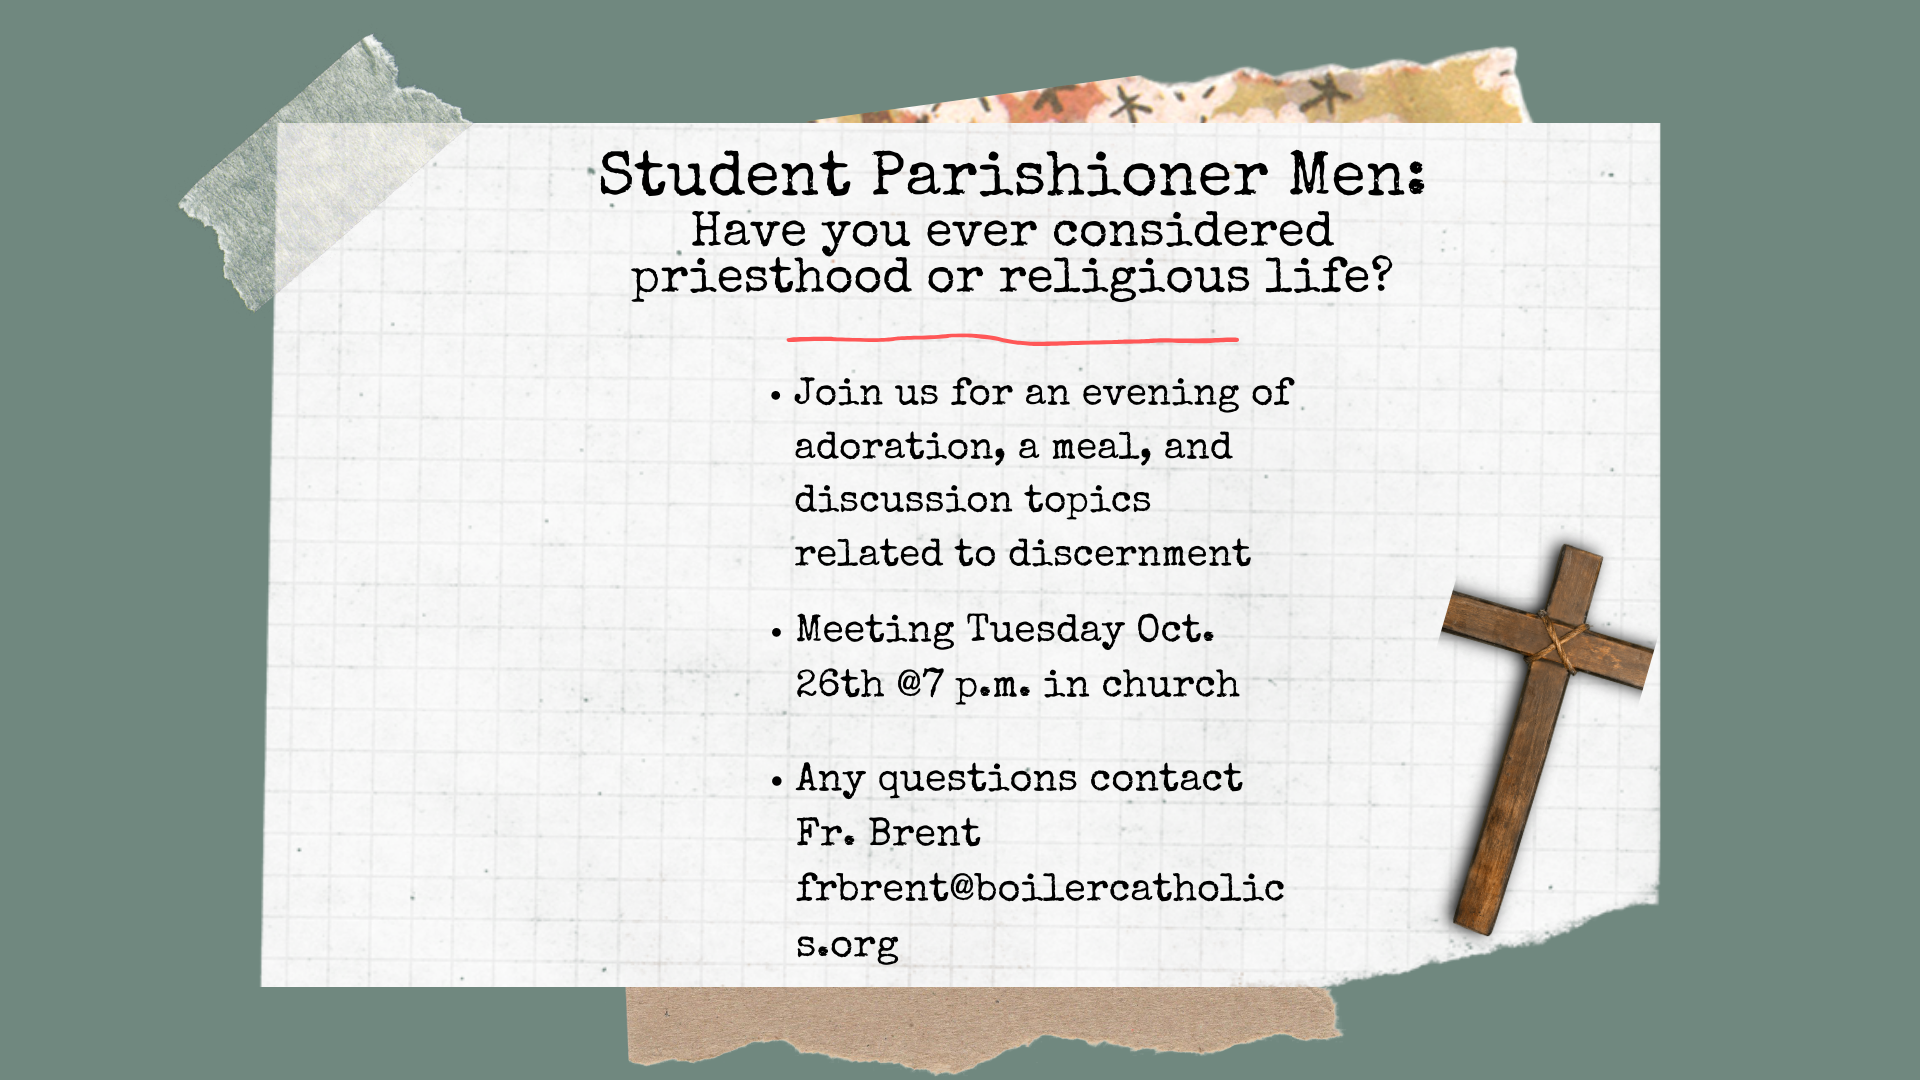 Student Parishioner Men Have you ever considered preisthood or religious life (1920 x 1080 px)